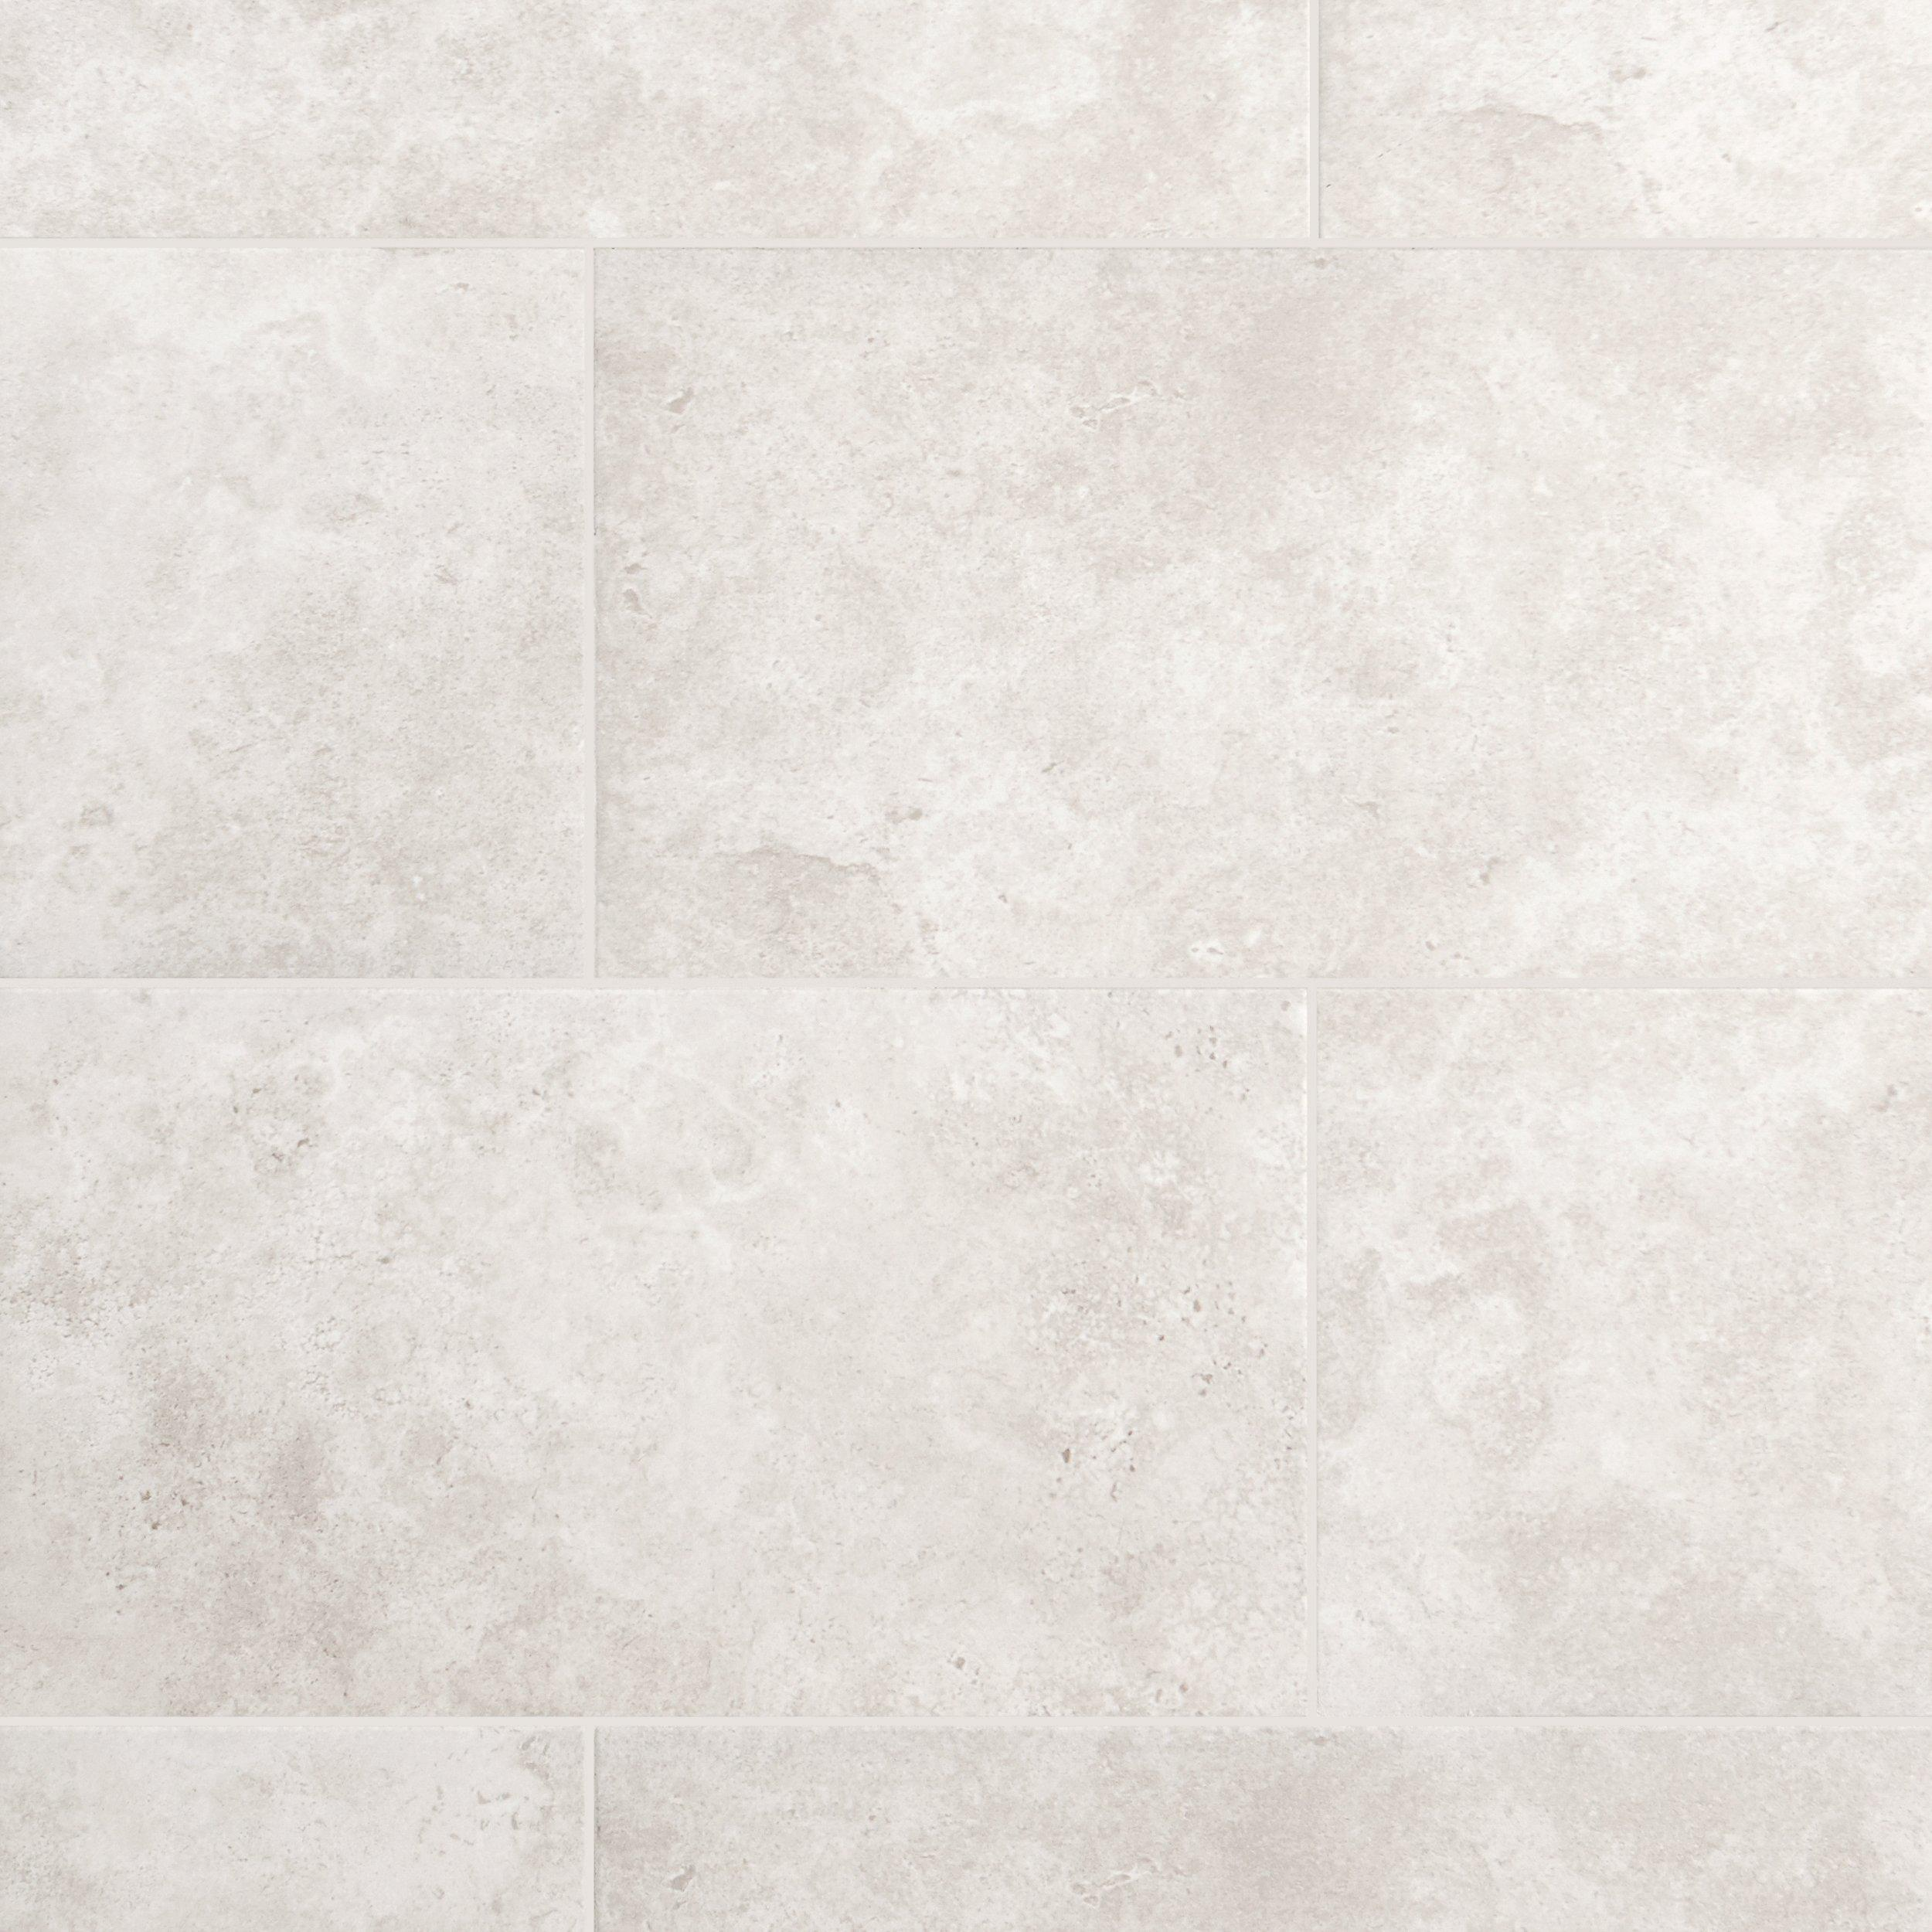 Floor Decor In Norco Ca Porcelain Tile Floor Decor